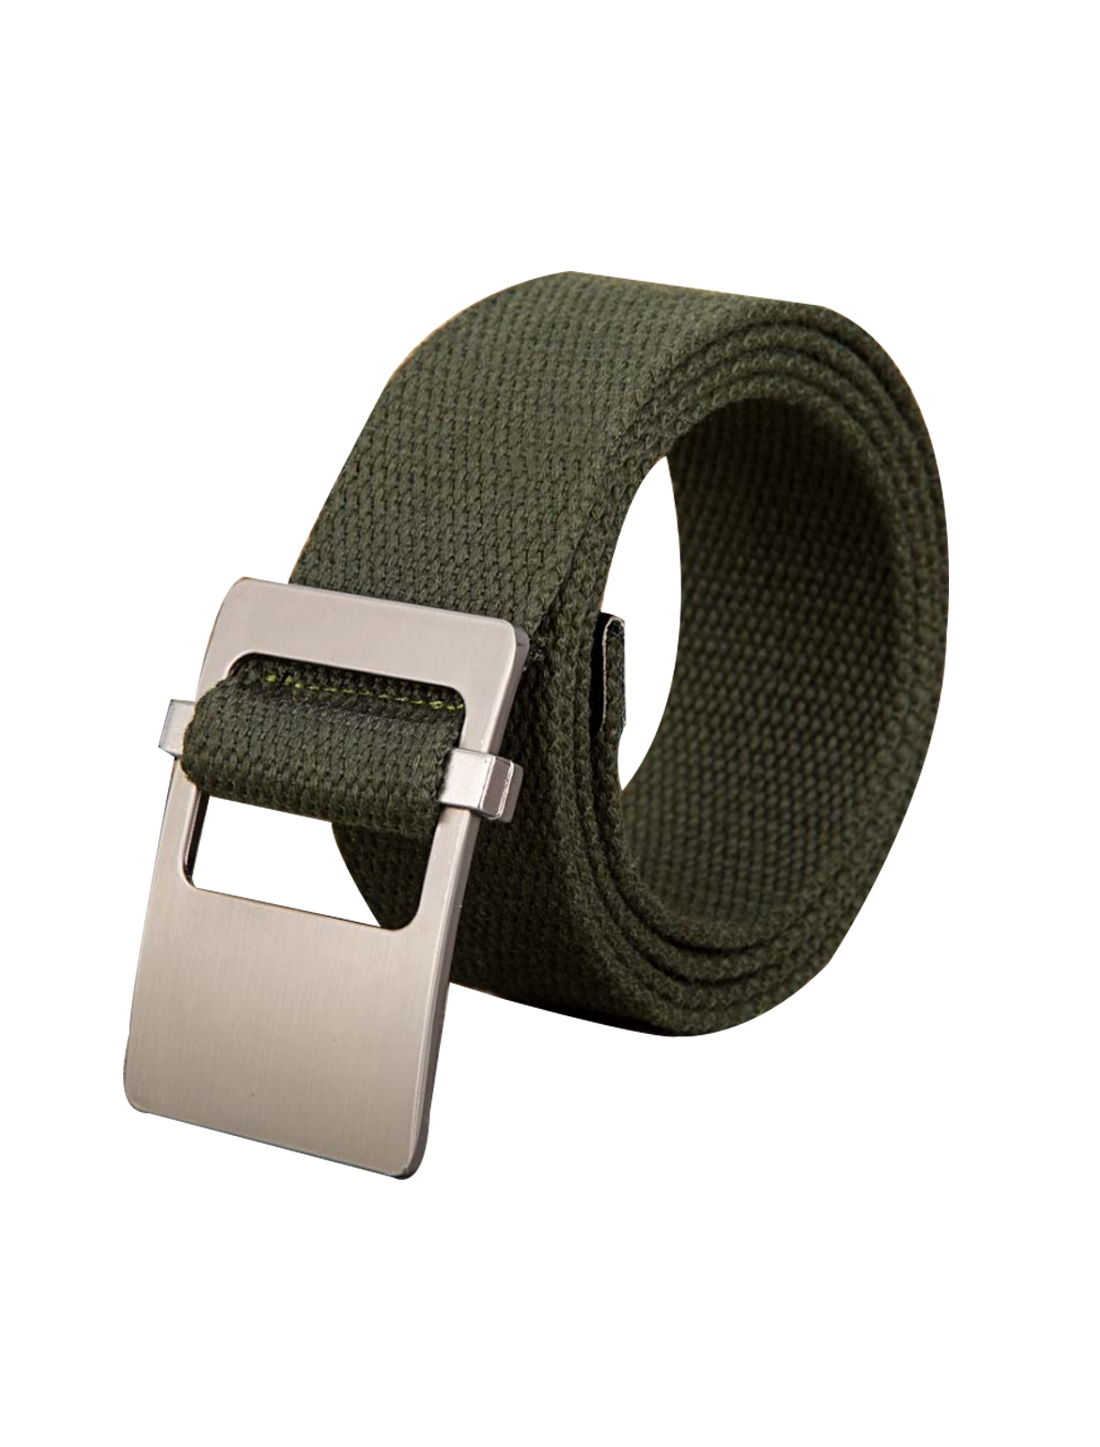 Unisex Canvas Adjustable Holeless Flat Metal Buckle Solid Color Belt Army Green